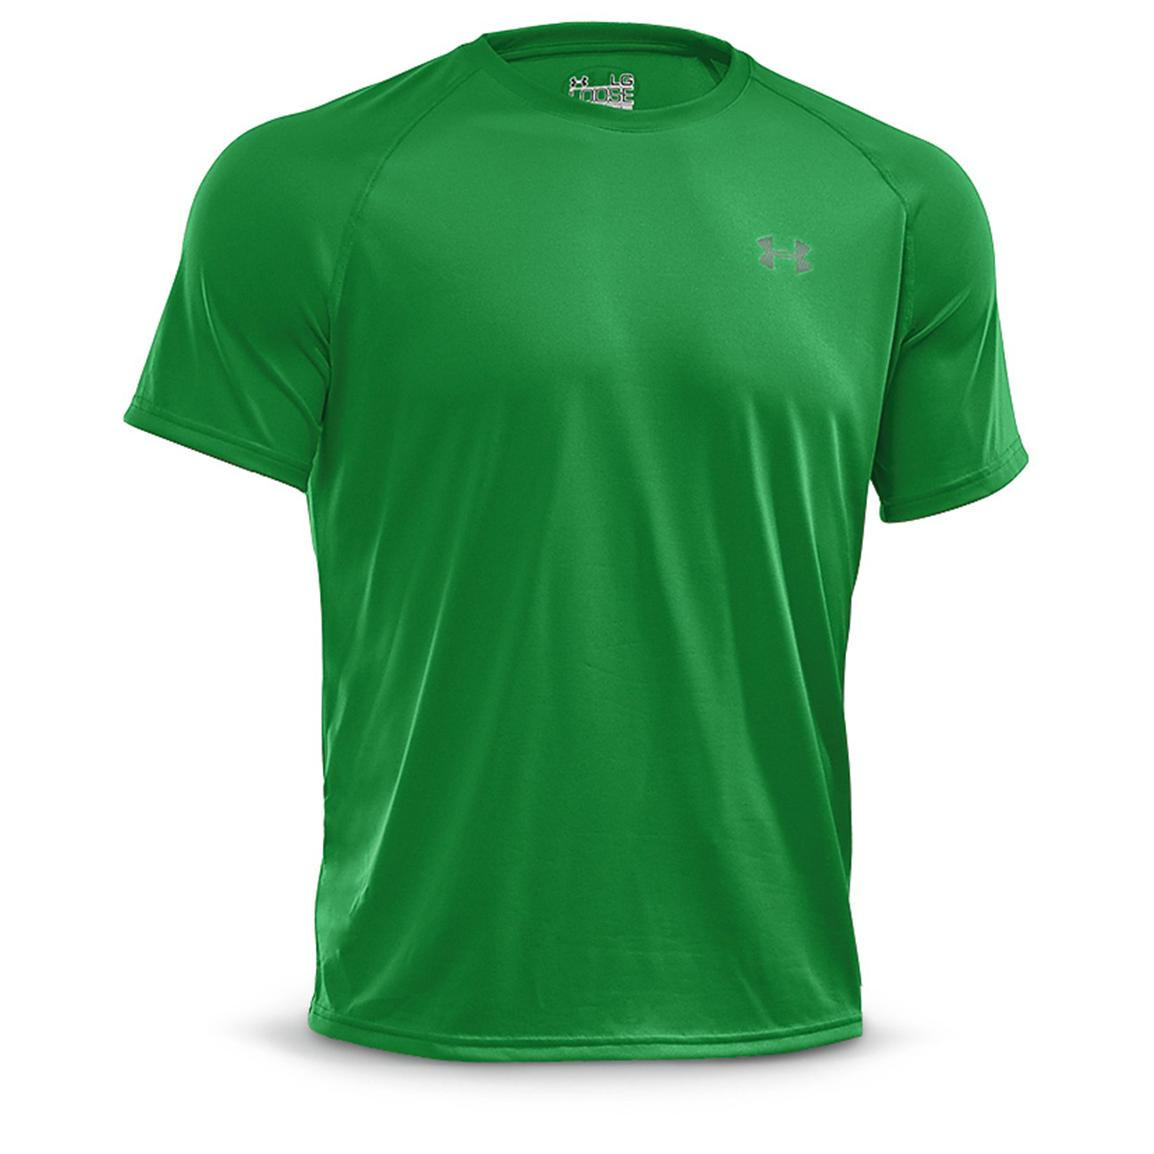 Under Armour Men's Tech Short-sleeved T-Shirt, Tree Frog / Storm